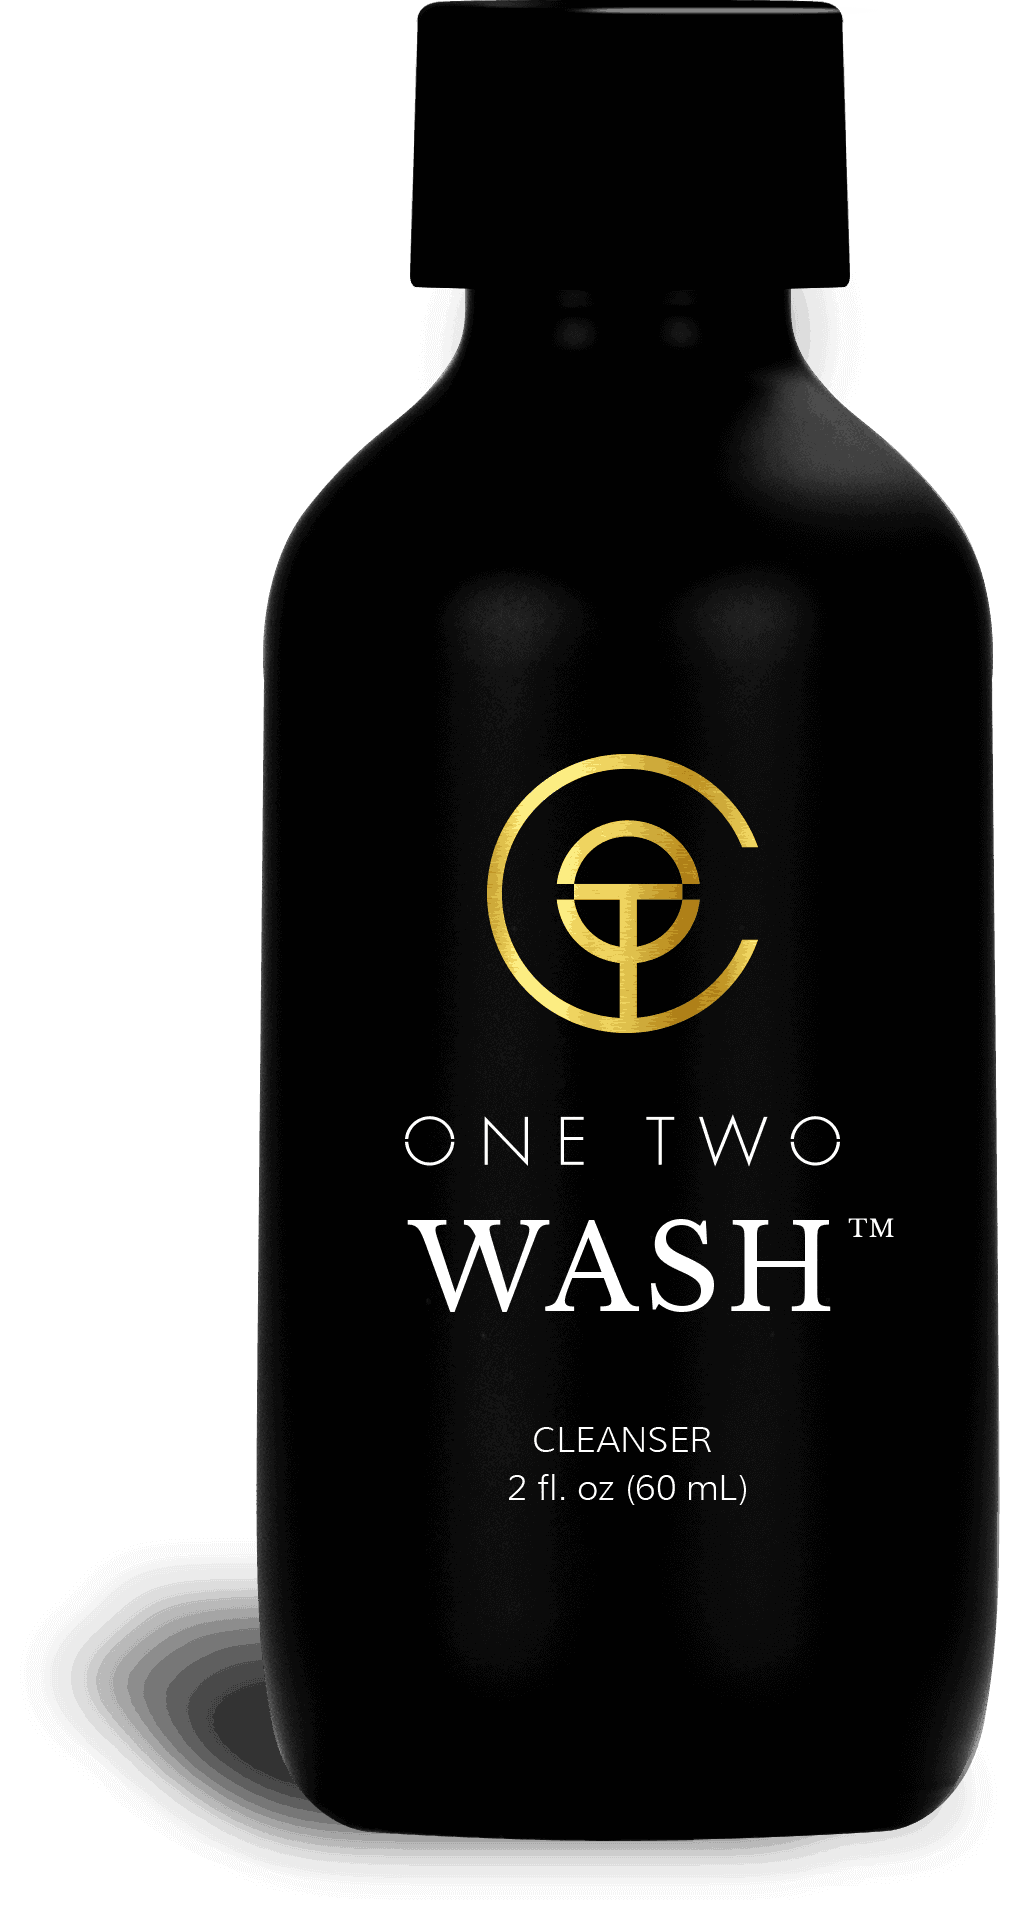 One Two Wash